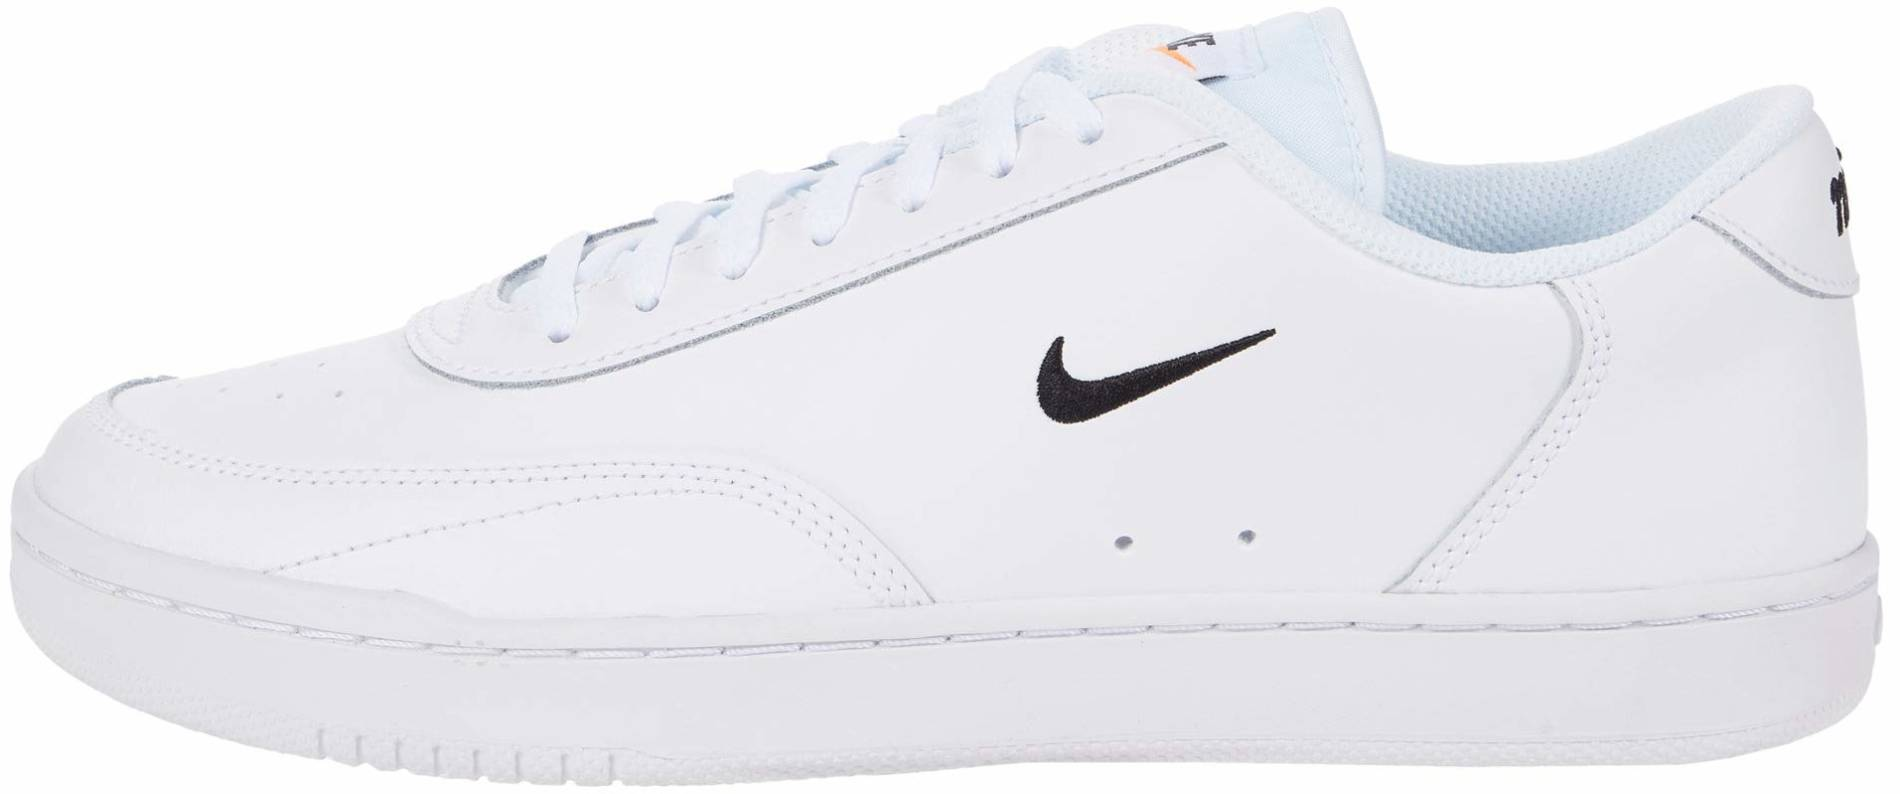 Muchos áspero Ortografía  Nike Court Vintage sneakers in white + blue (only $55) | RunRepeat